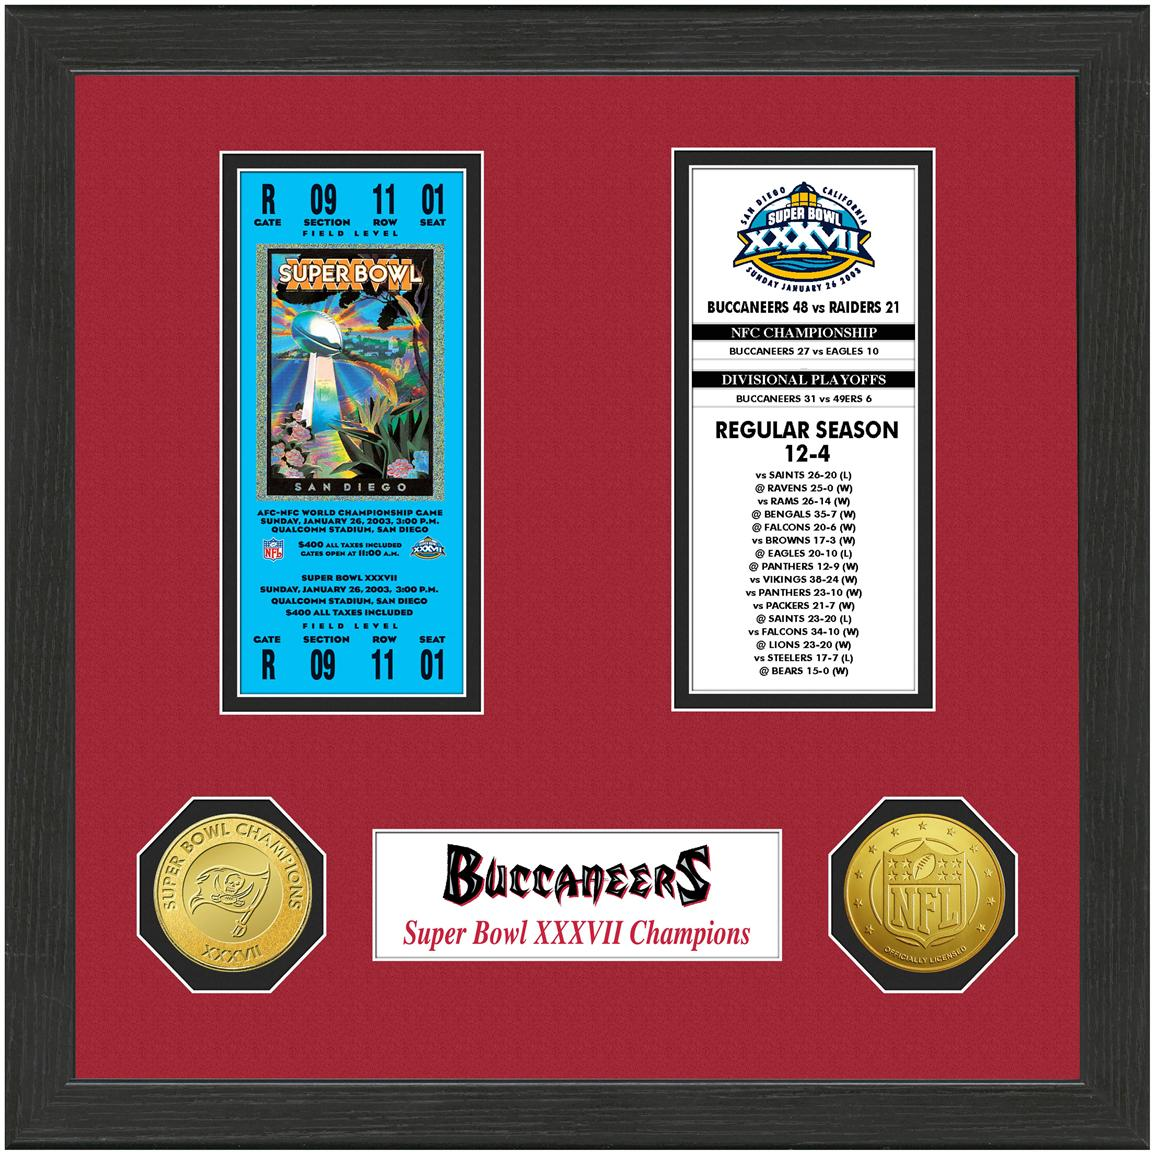 Tampa Bay Buccaneers Super Bowl Championship Ticket Collection